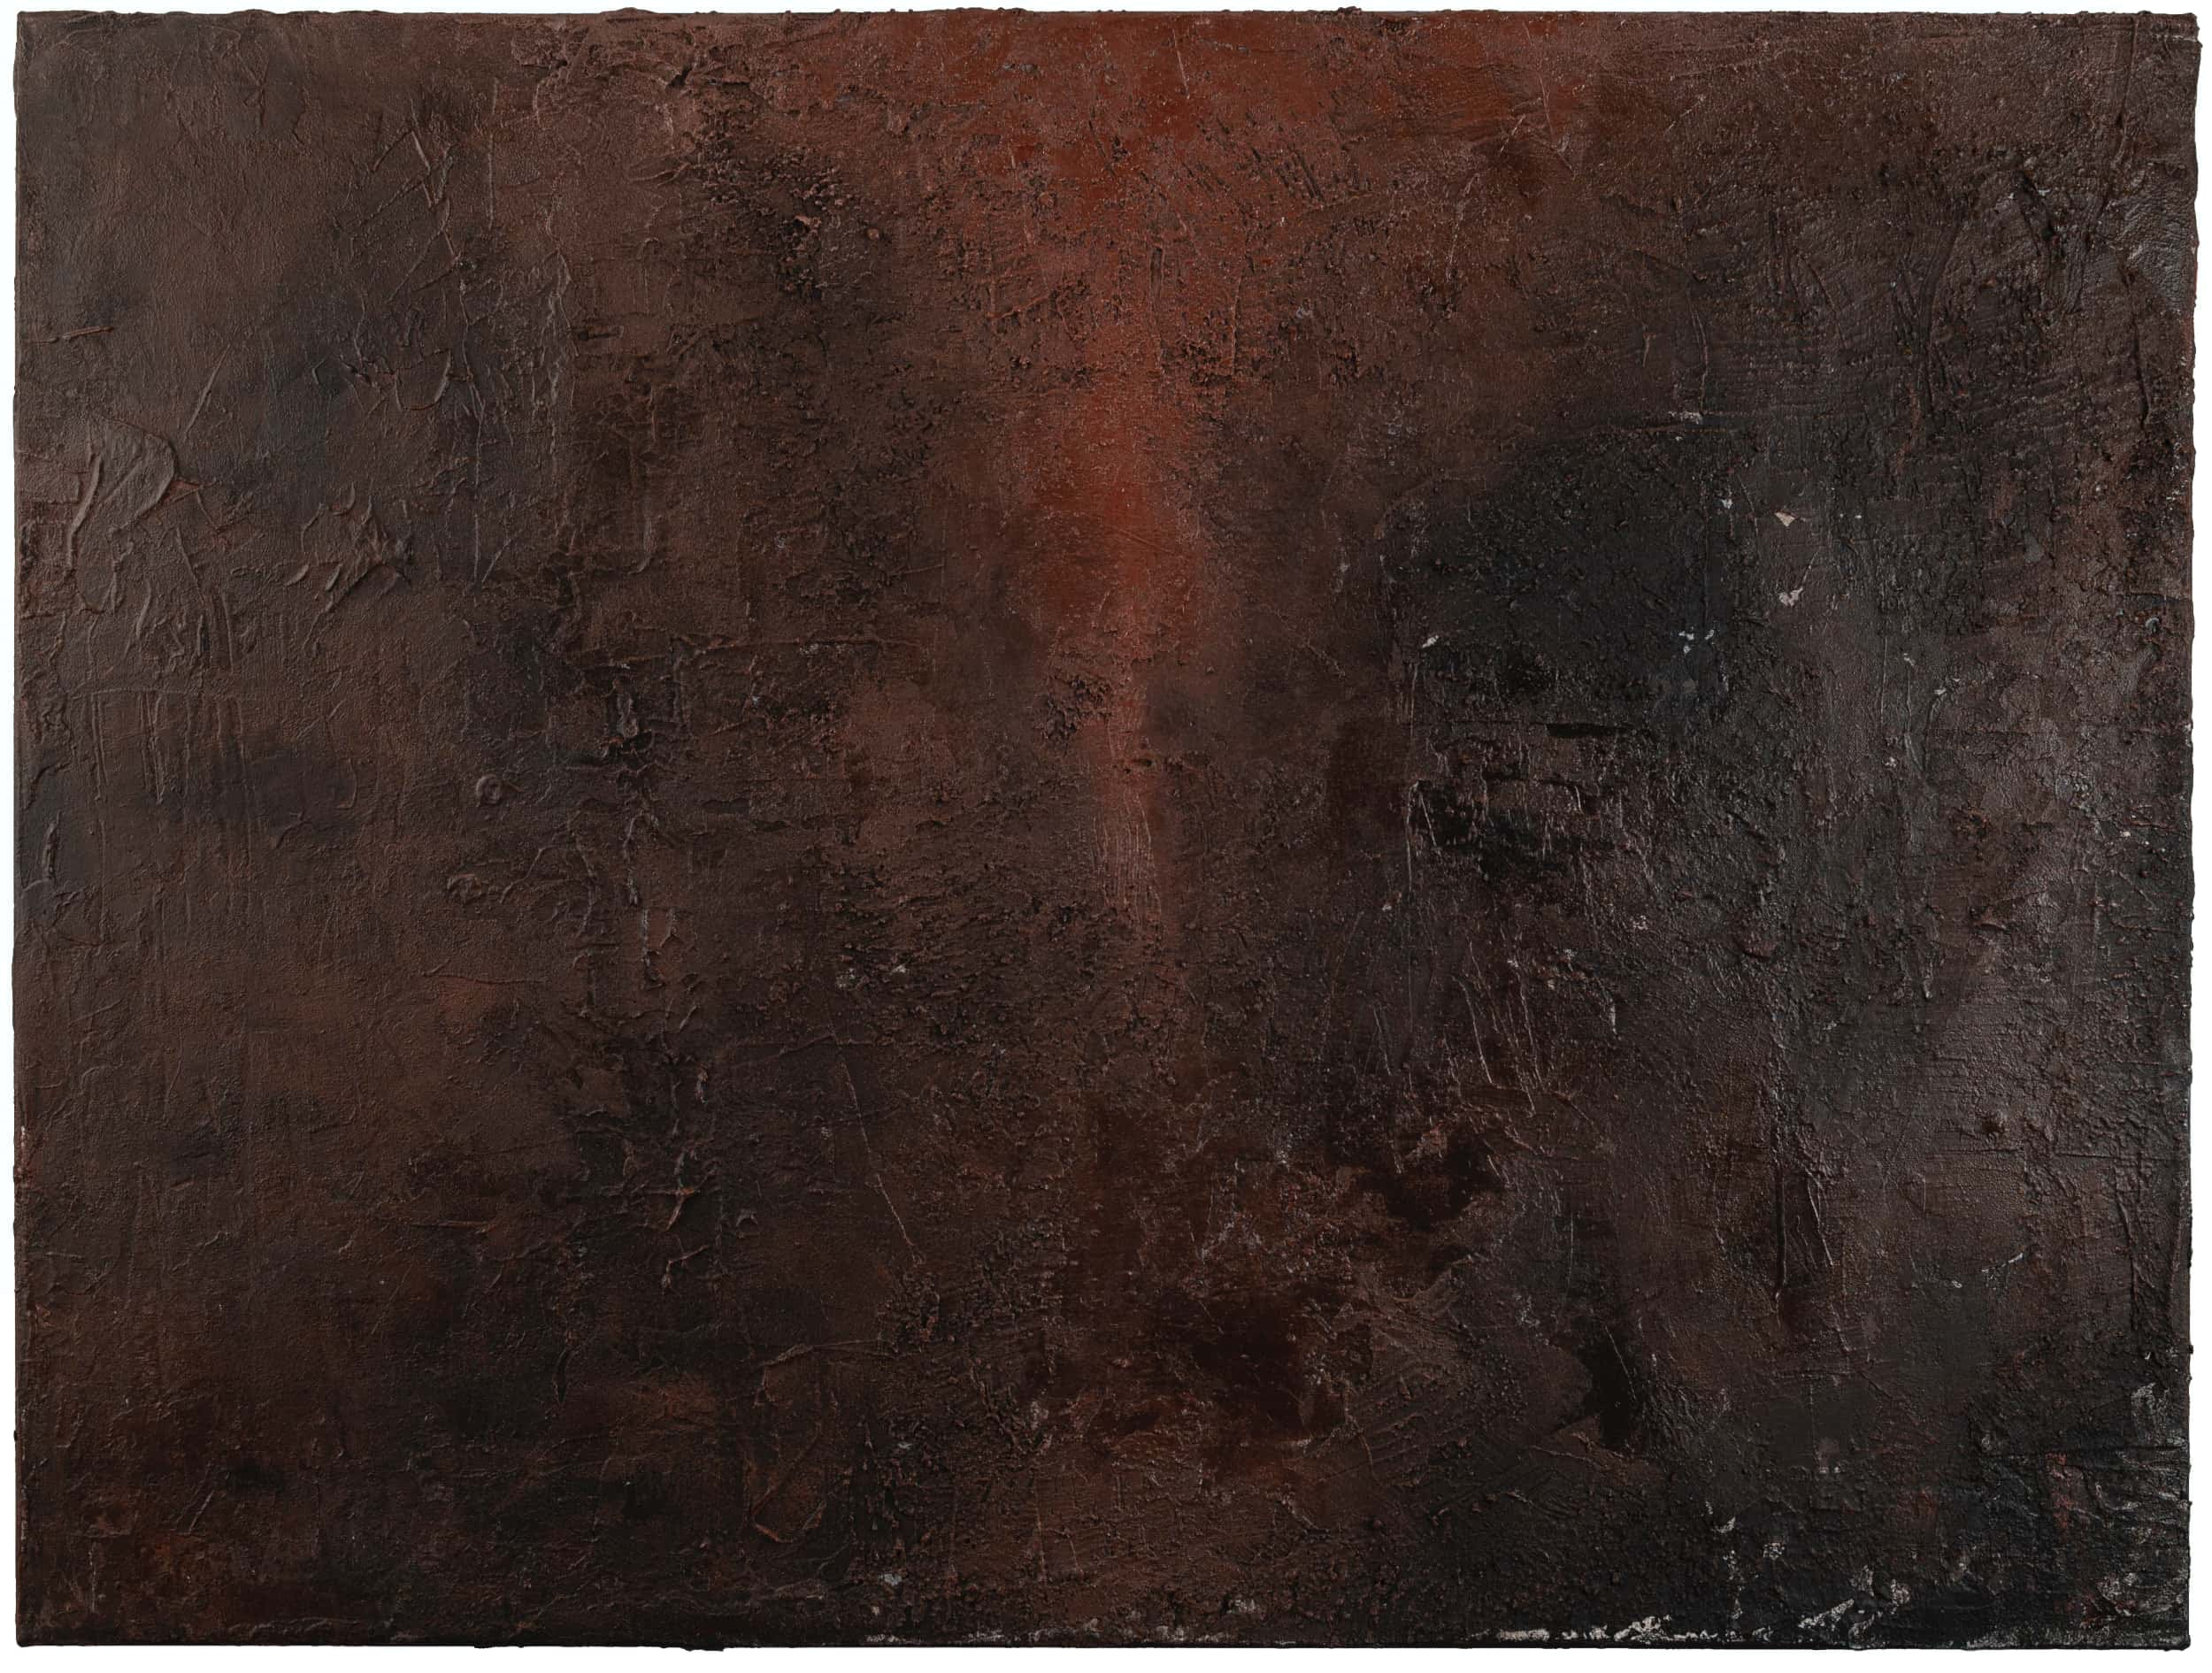 517153 , 2019 Acrylic, pumice, charcoal, india ink, stucco on canvas 30 × 40 in (76.2 × 101.6 cm)